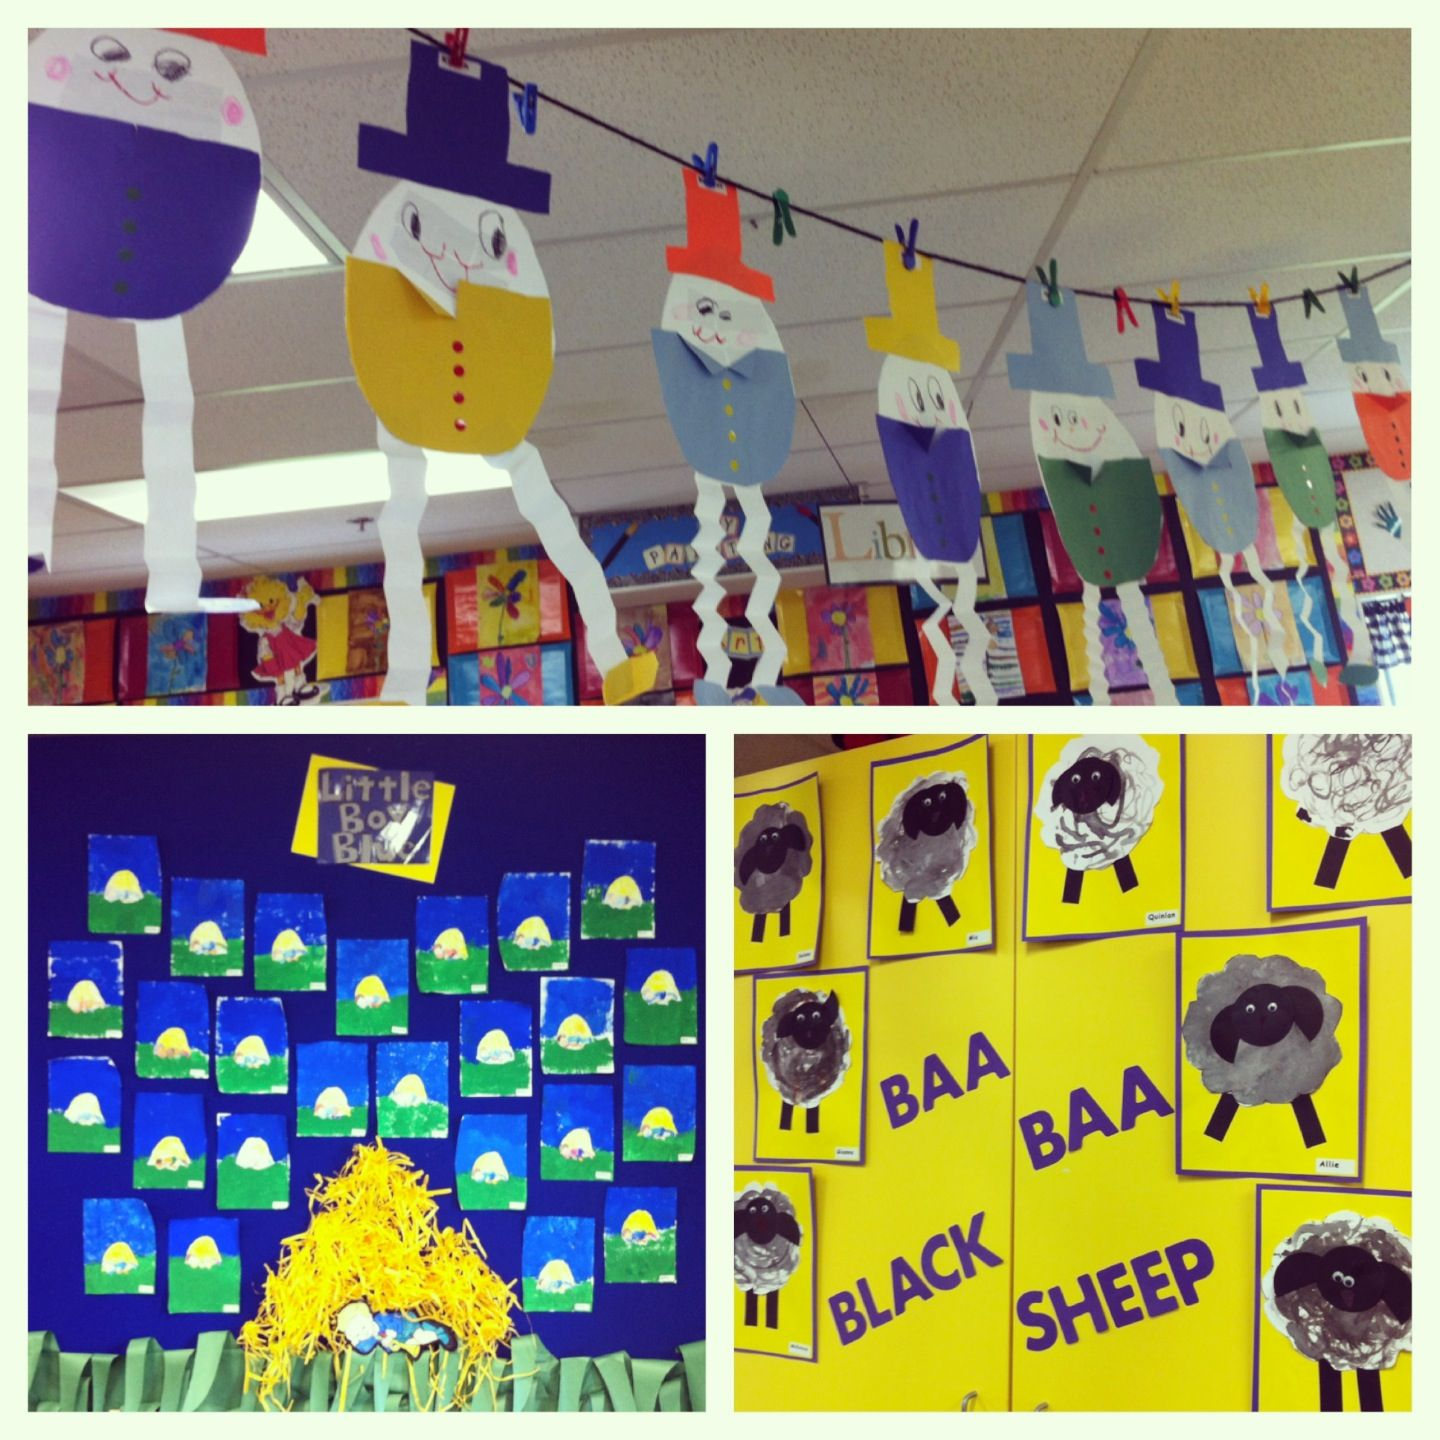 Nursery Rhymes Bulletin Boards In Kindergarten Humpty Dumpty Little Boy Blue And Baa Baa